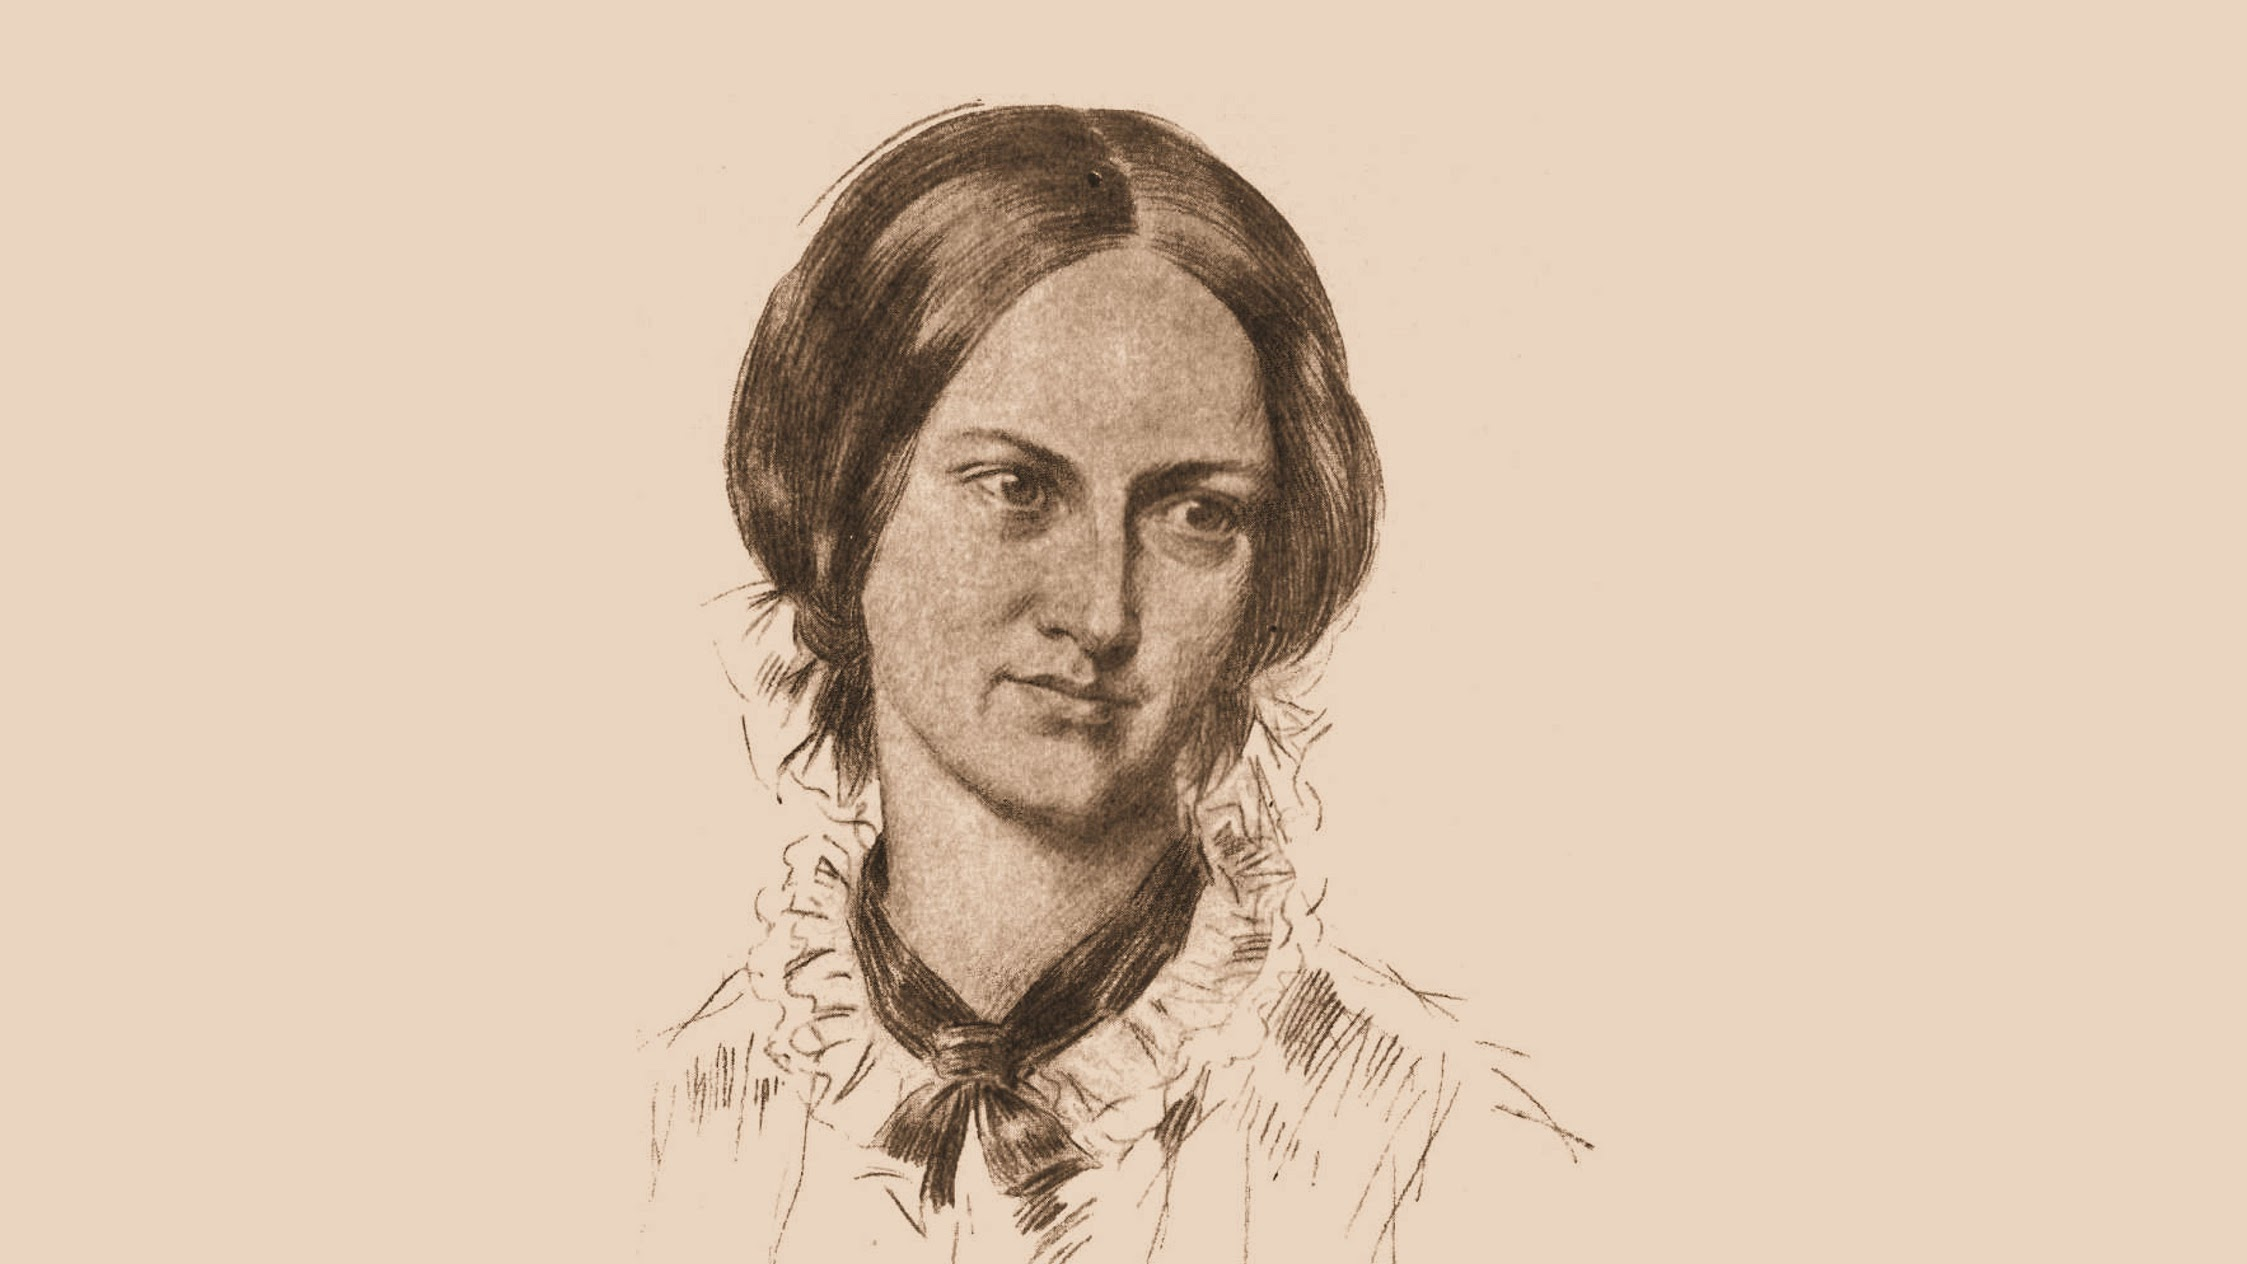 literary criticism of wuthering heights by emily jane bront This thesis, adopting gothic criticism, attempts to analyze emily bronte's   mature embodiment of emily bronte's literary thoughts this thesis  key words:  wuthering heights emily bronte gothic novel  jane eyre third.